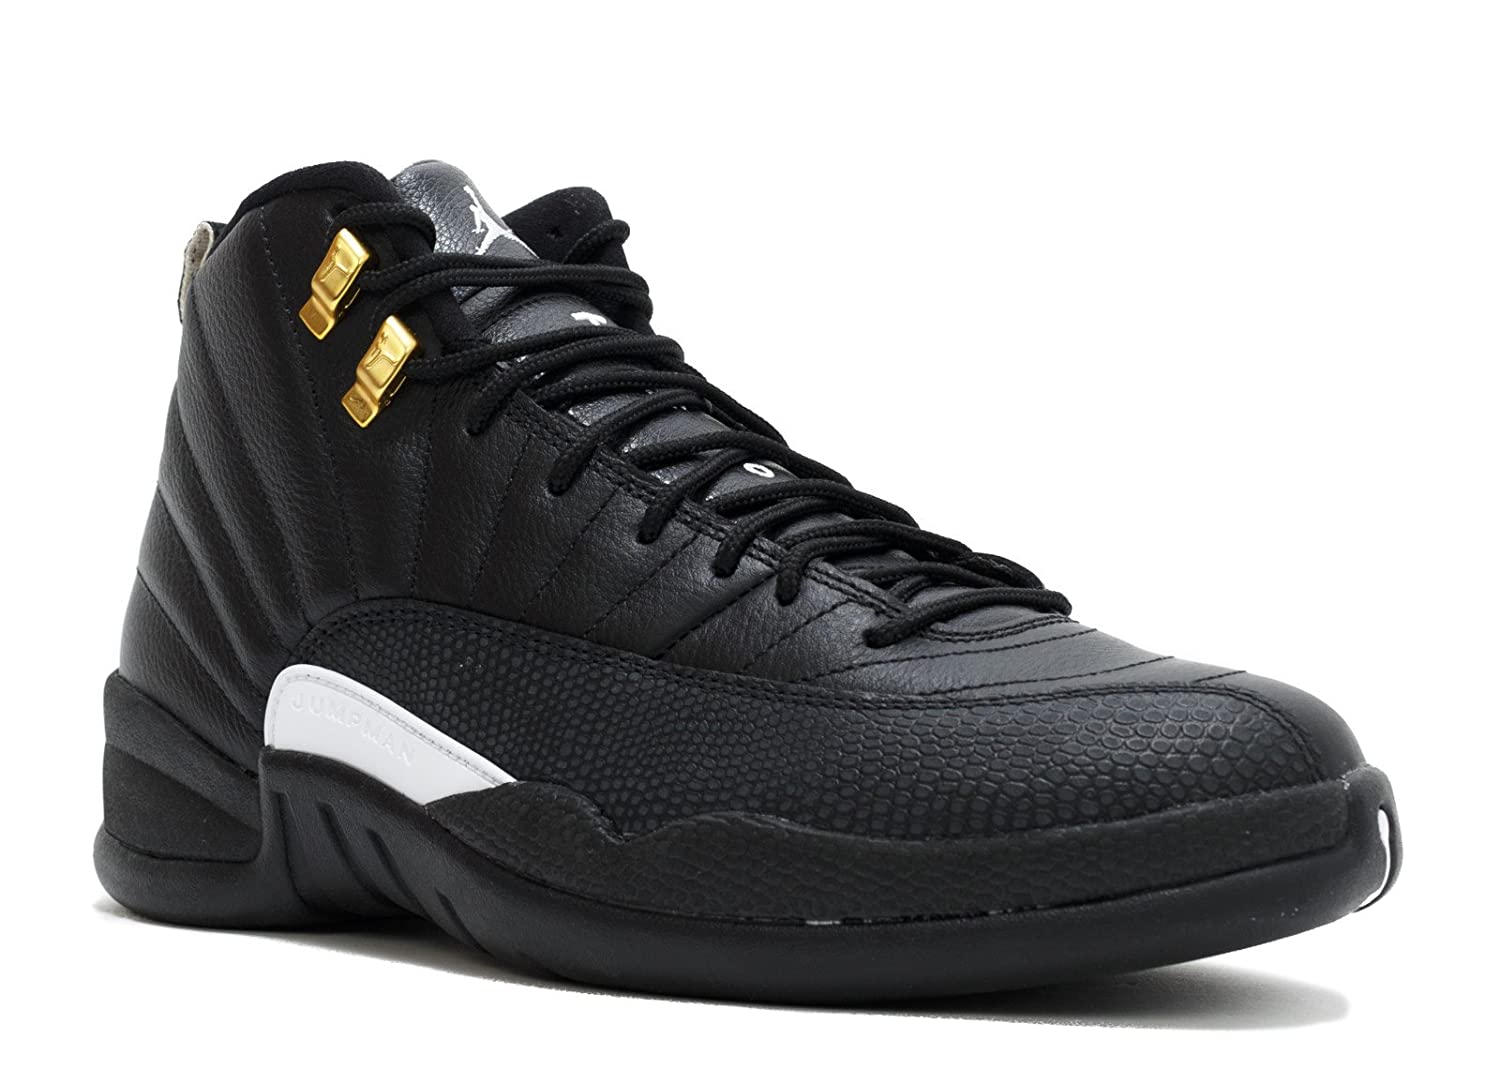 0d142de7297 Amazon.com | Jordan Men's Air 12 Retro, The Master-Black/White-Black-Metallic  Gold (18) | Basketball